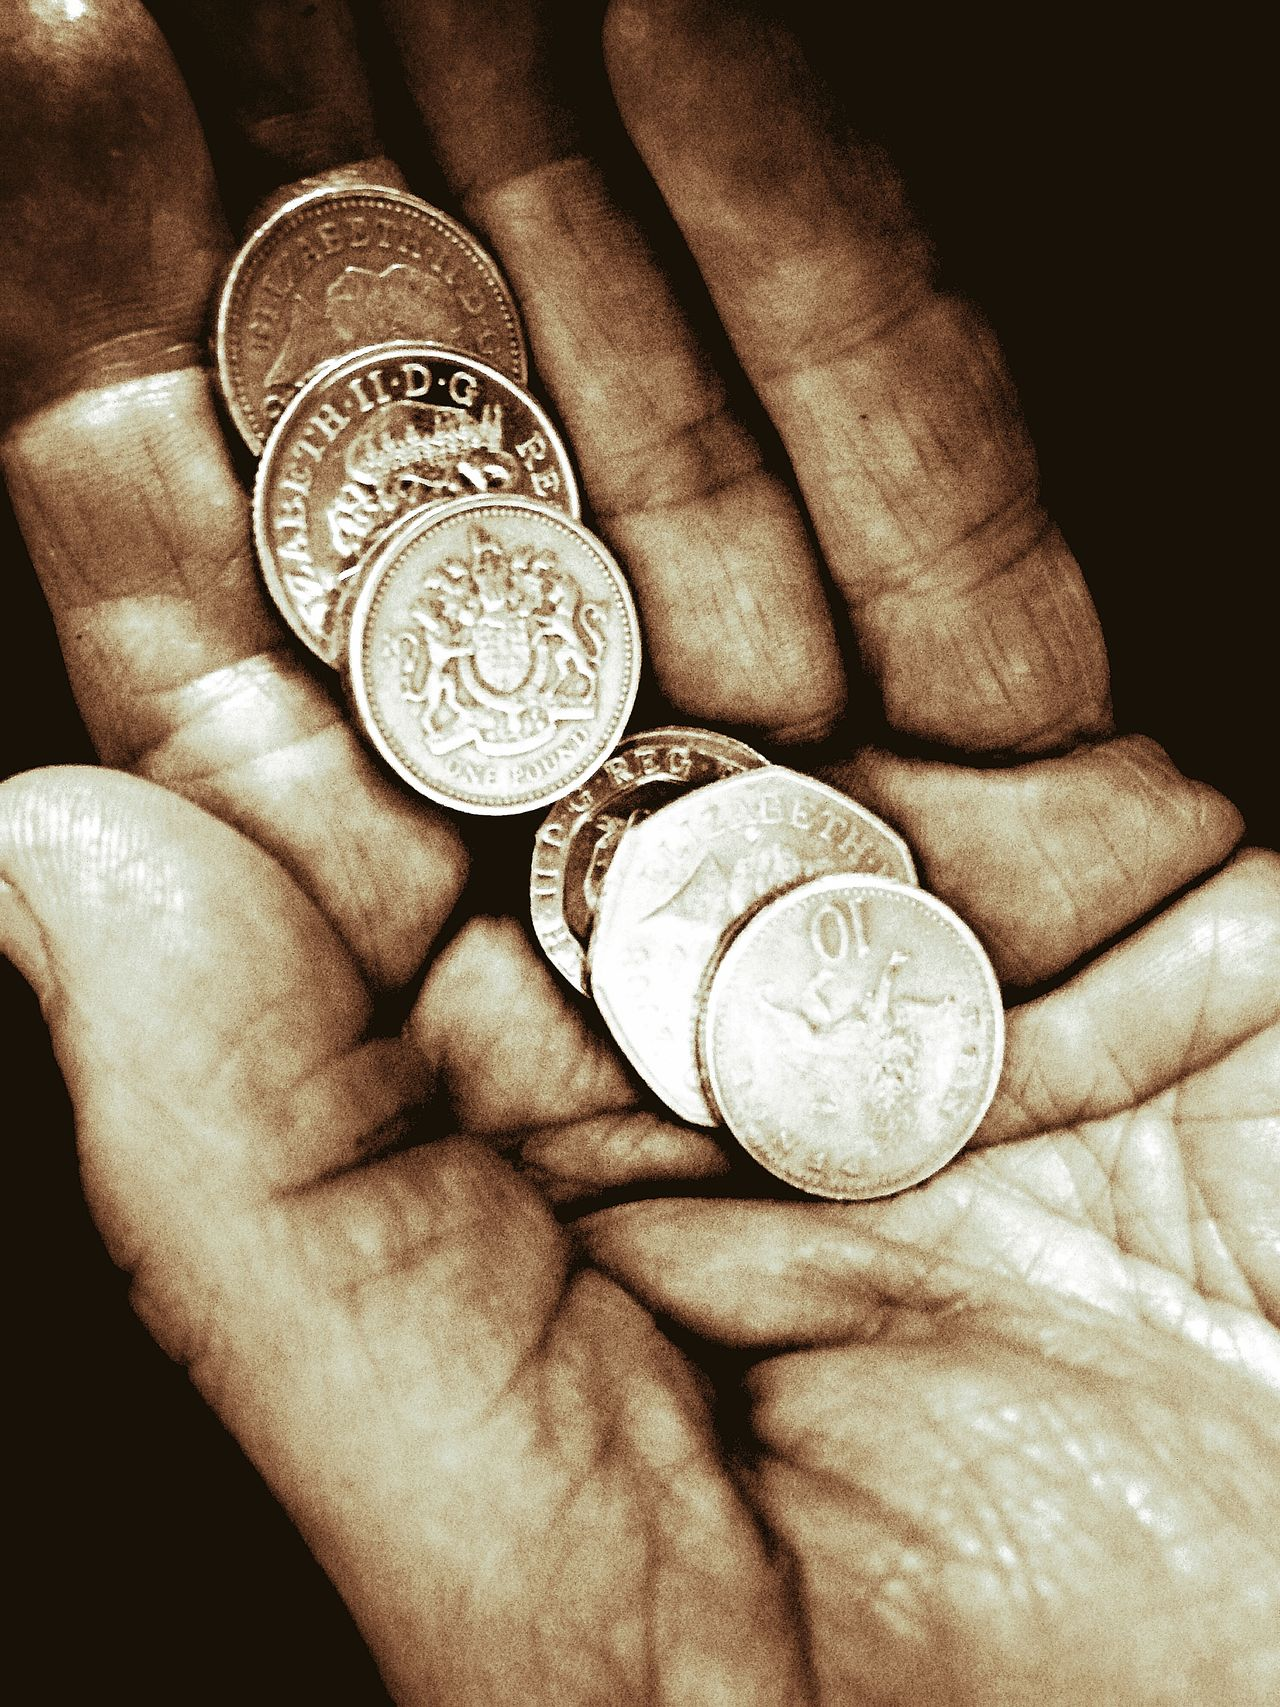 Human Hand Human Body Part Coin Currency Lifestyles Holding Close-up Adult Light And Shadow Wealth Strength Natural Lighting Fingers coins Stirling Charity donate